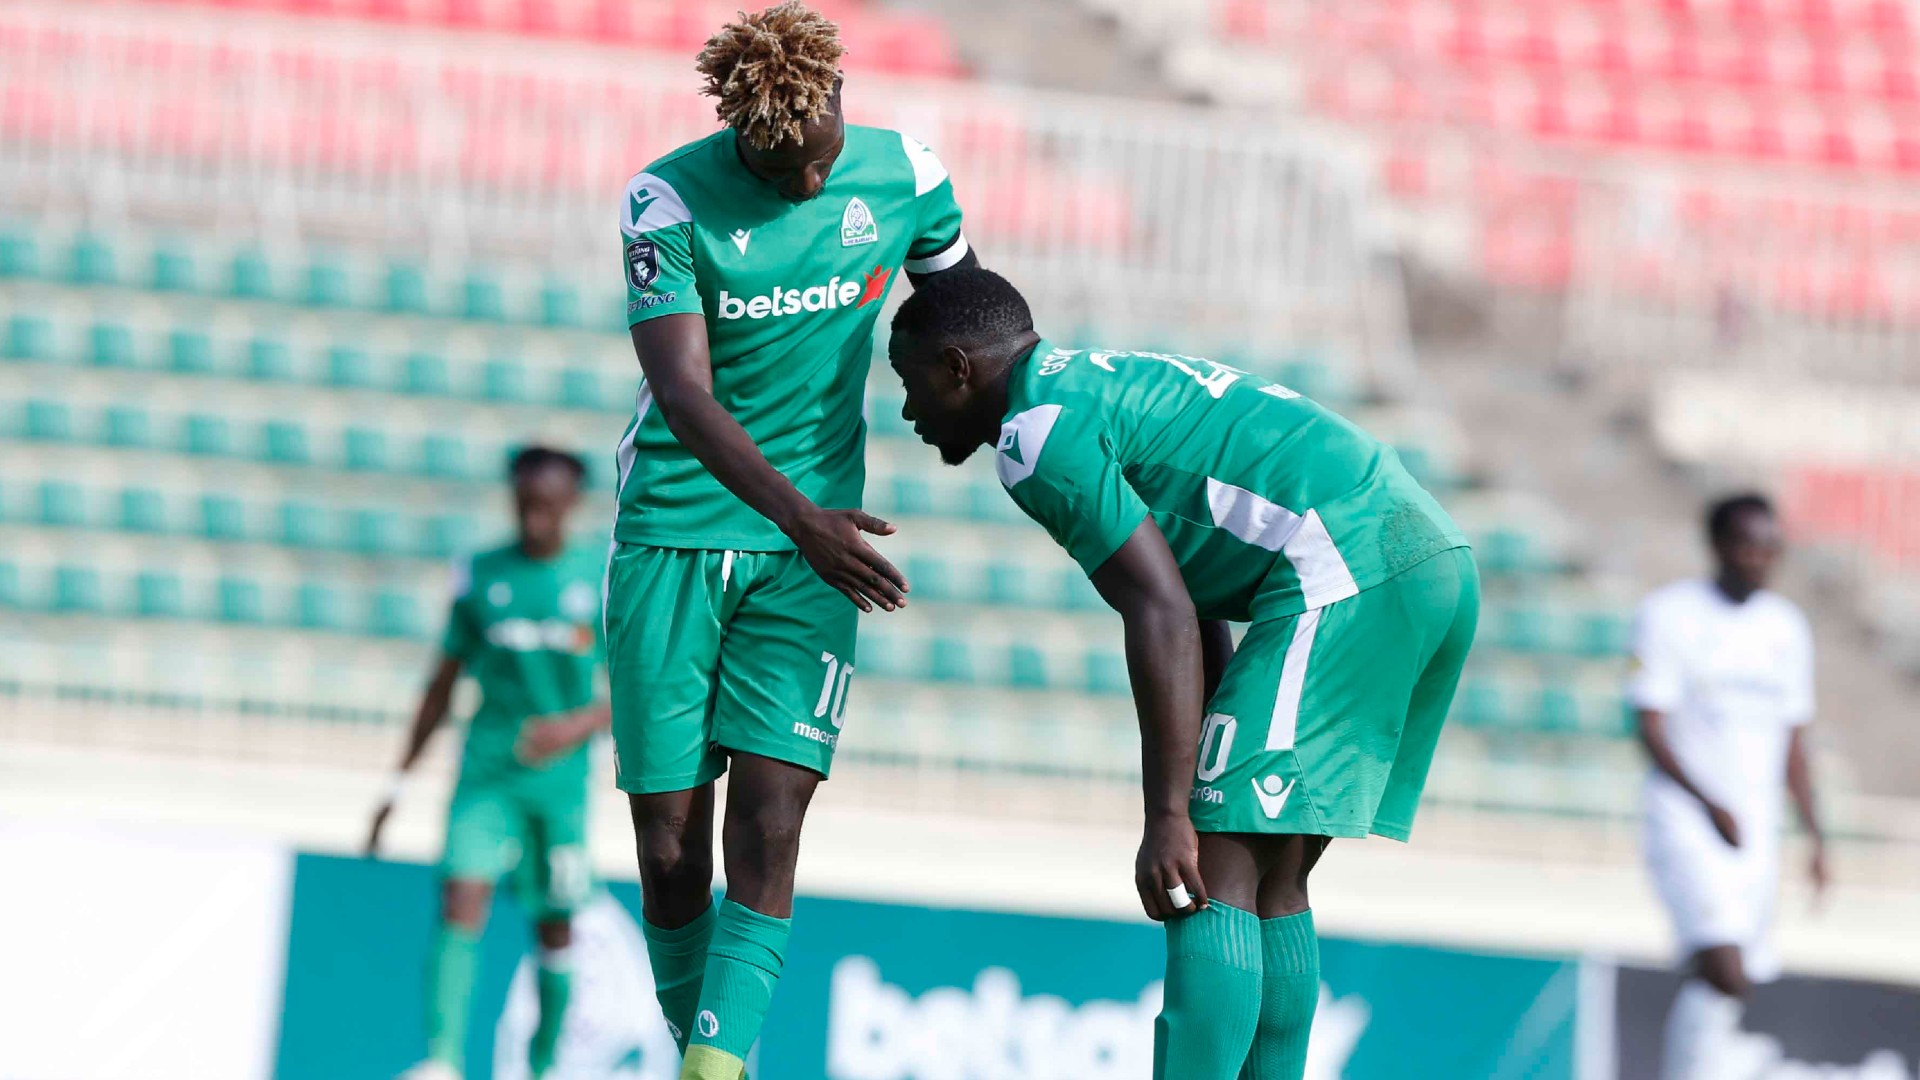 'Not carelessness or recklessness' – Gor Mahia's Rachier on loss of players as free agents